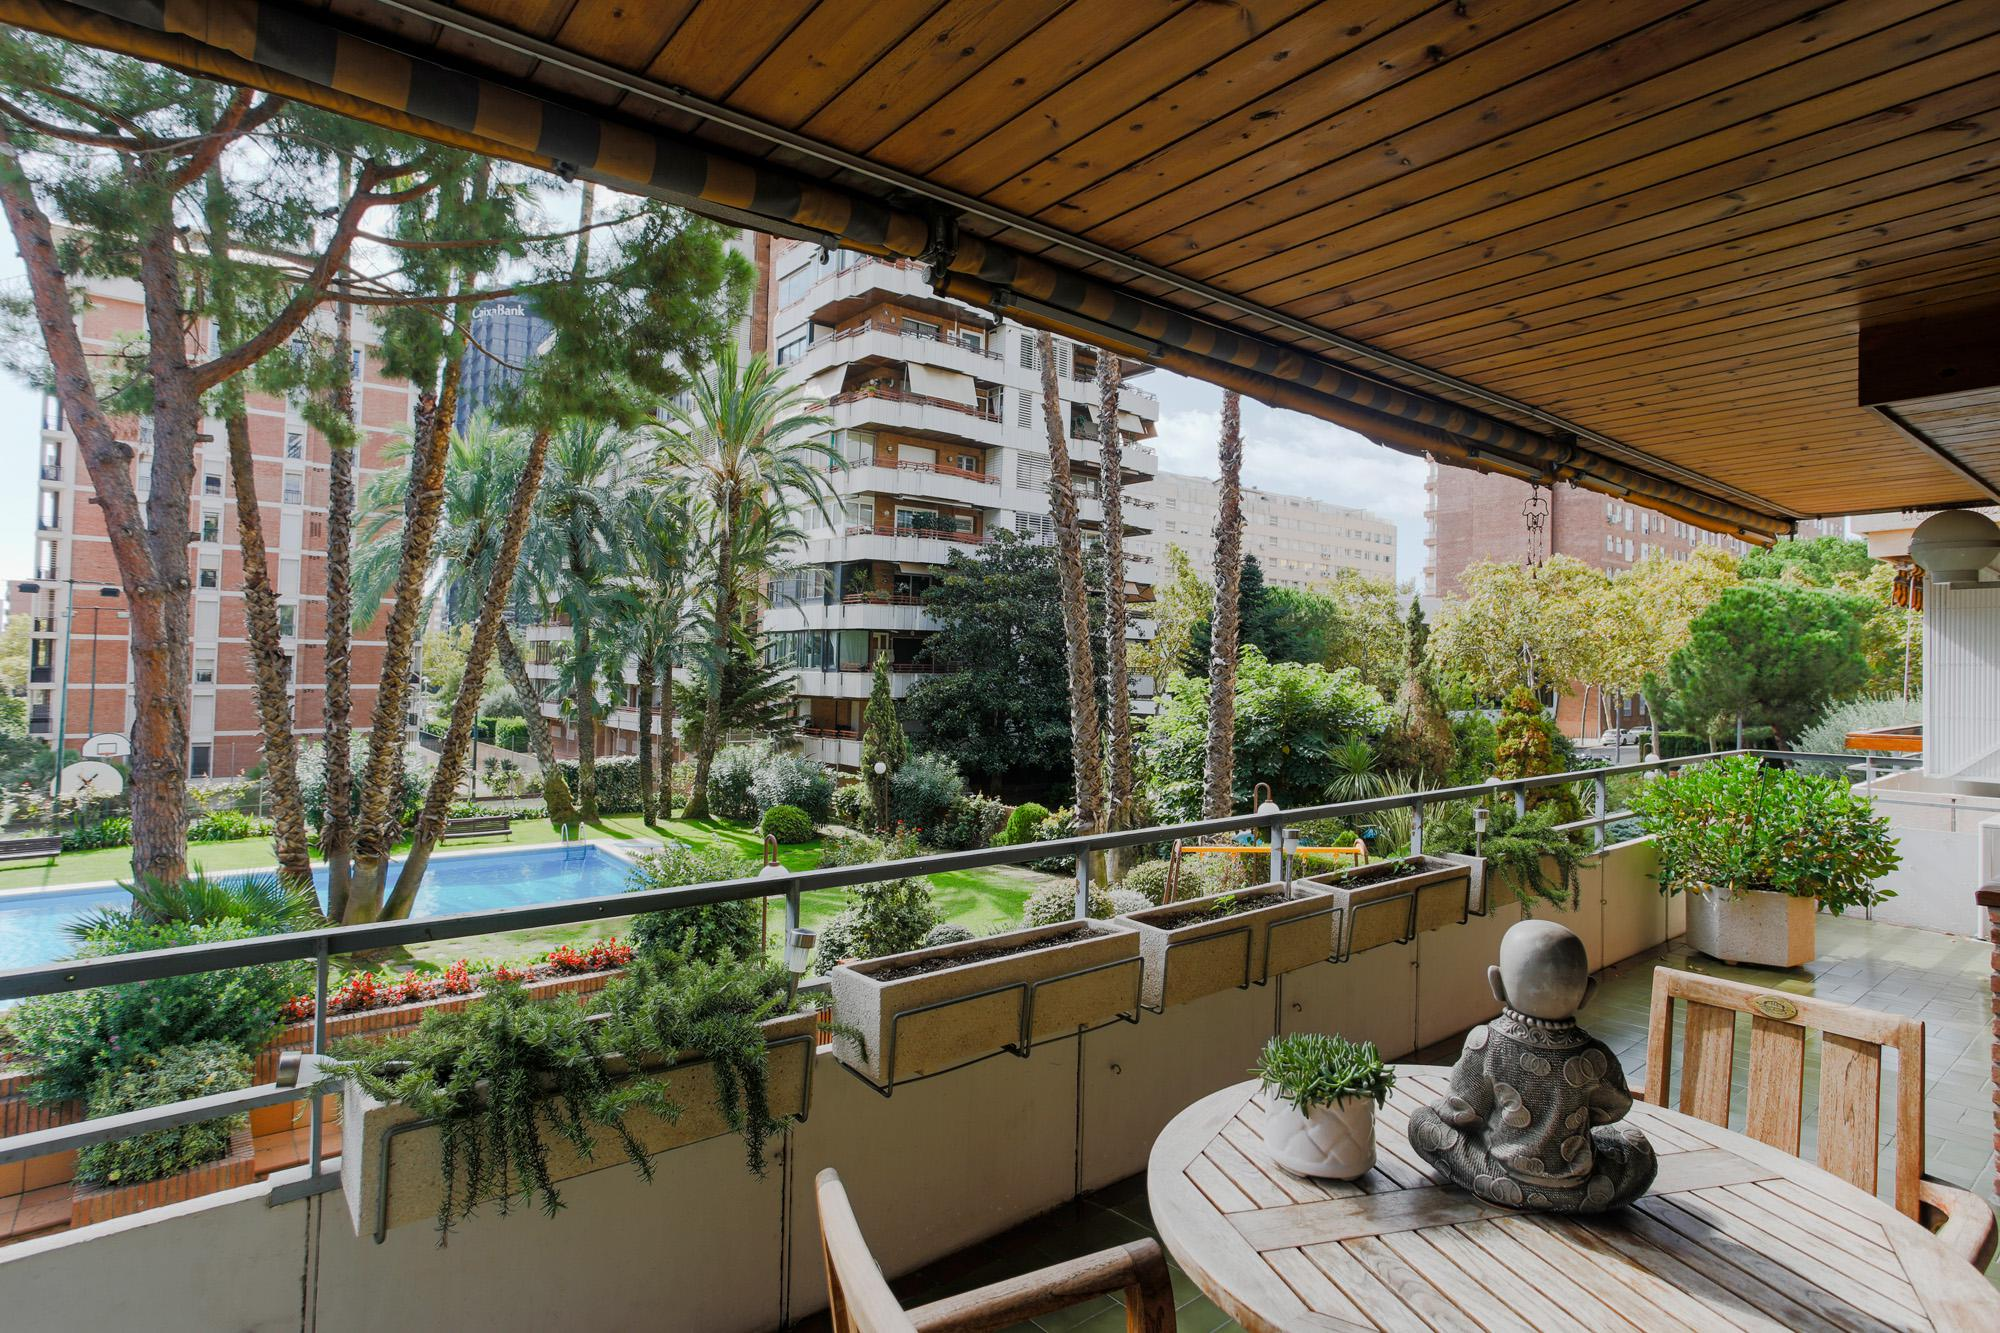 232863 Apartment for sale in Les Corts, Pedralbes 2